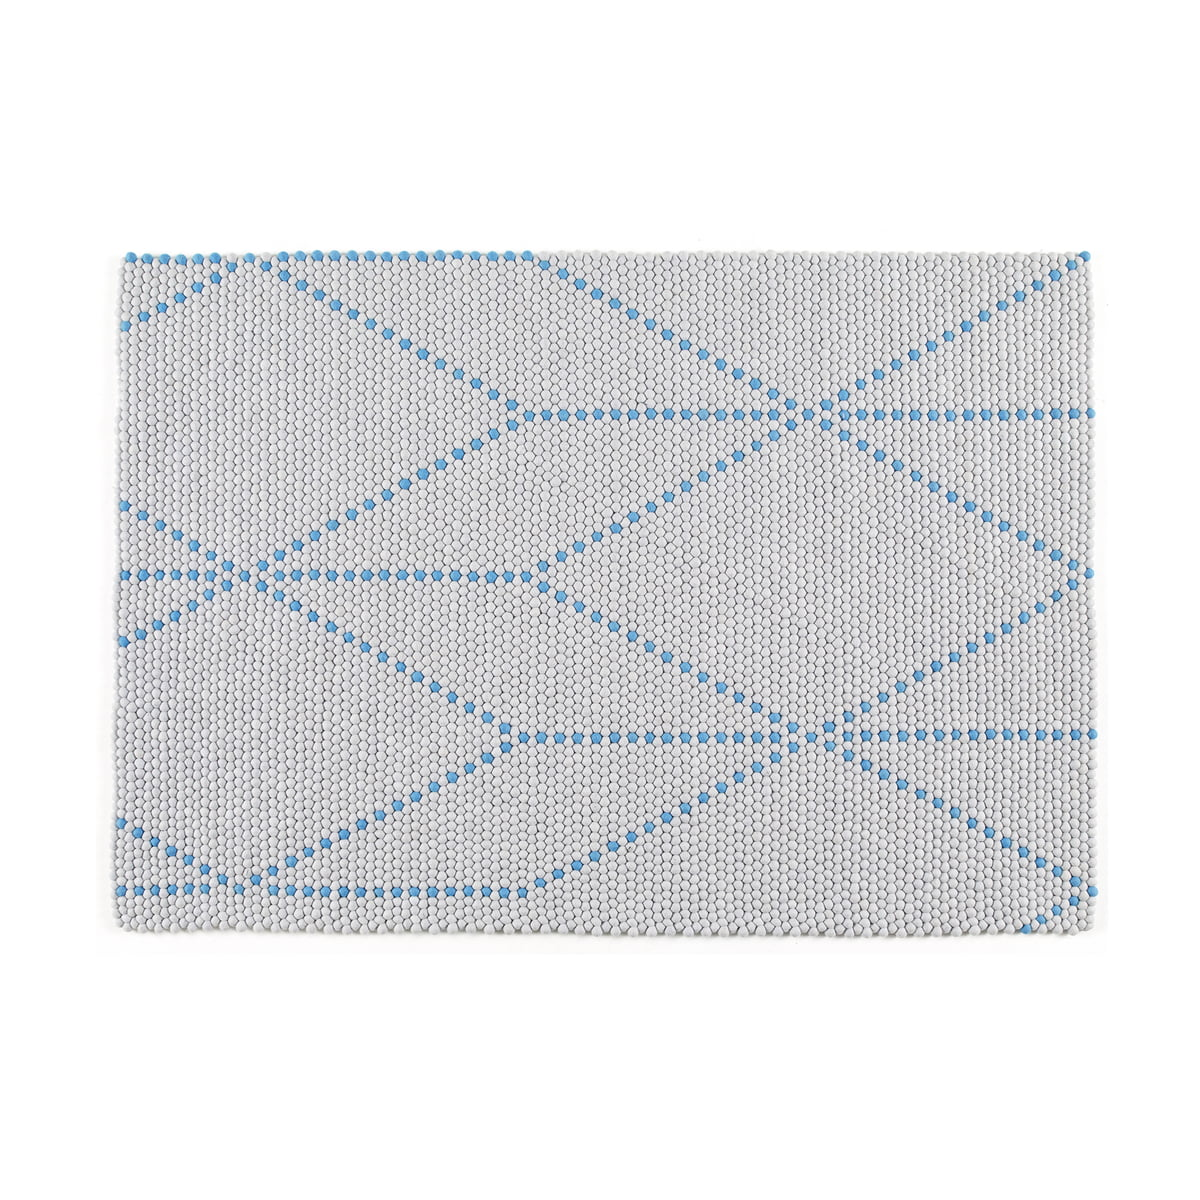 Der Hay - S&B Dot Carpet in big blue, 120x170cm